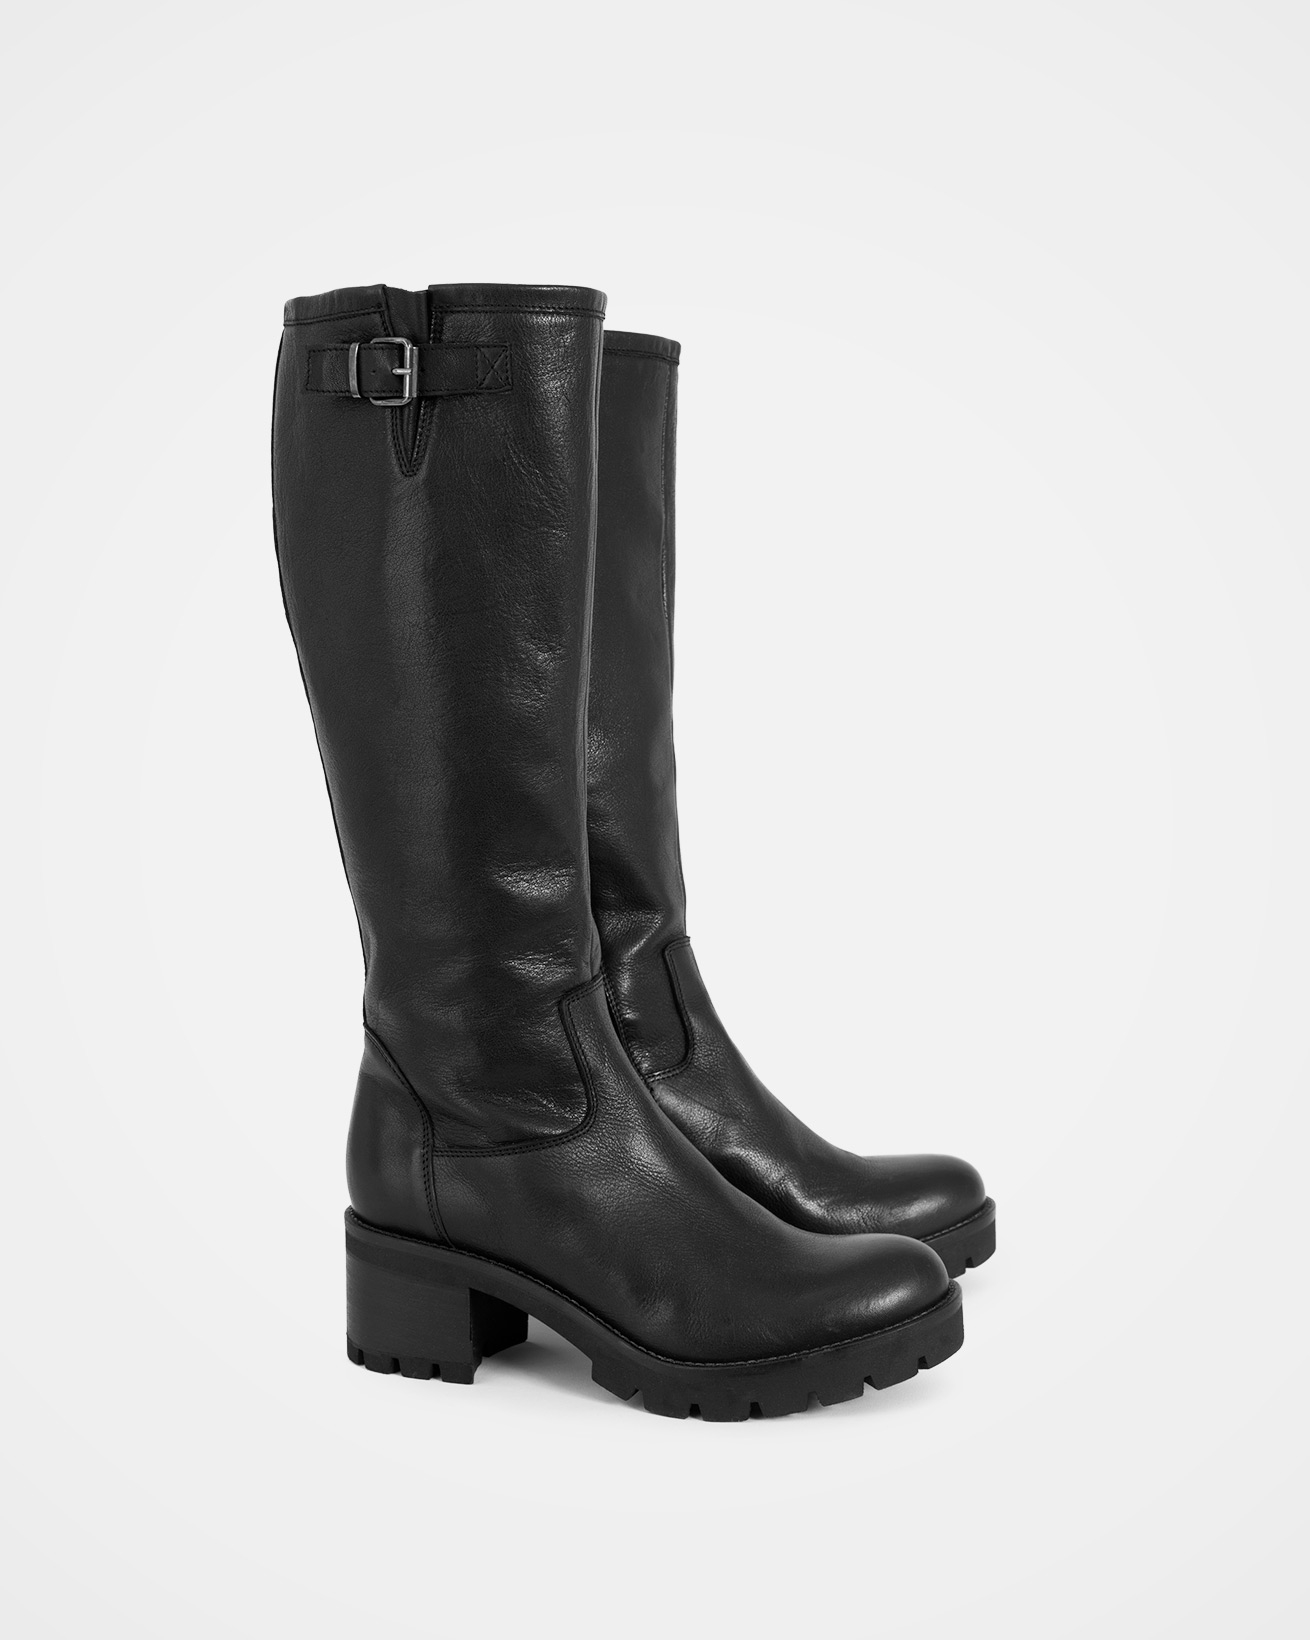 7640_biker-knee-boot_black_pair.jpg